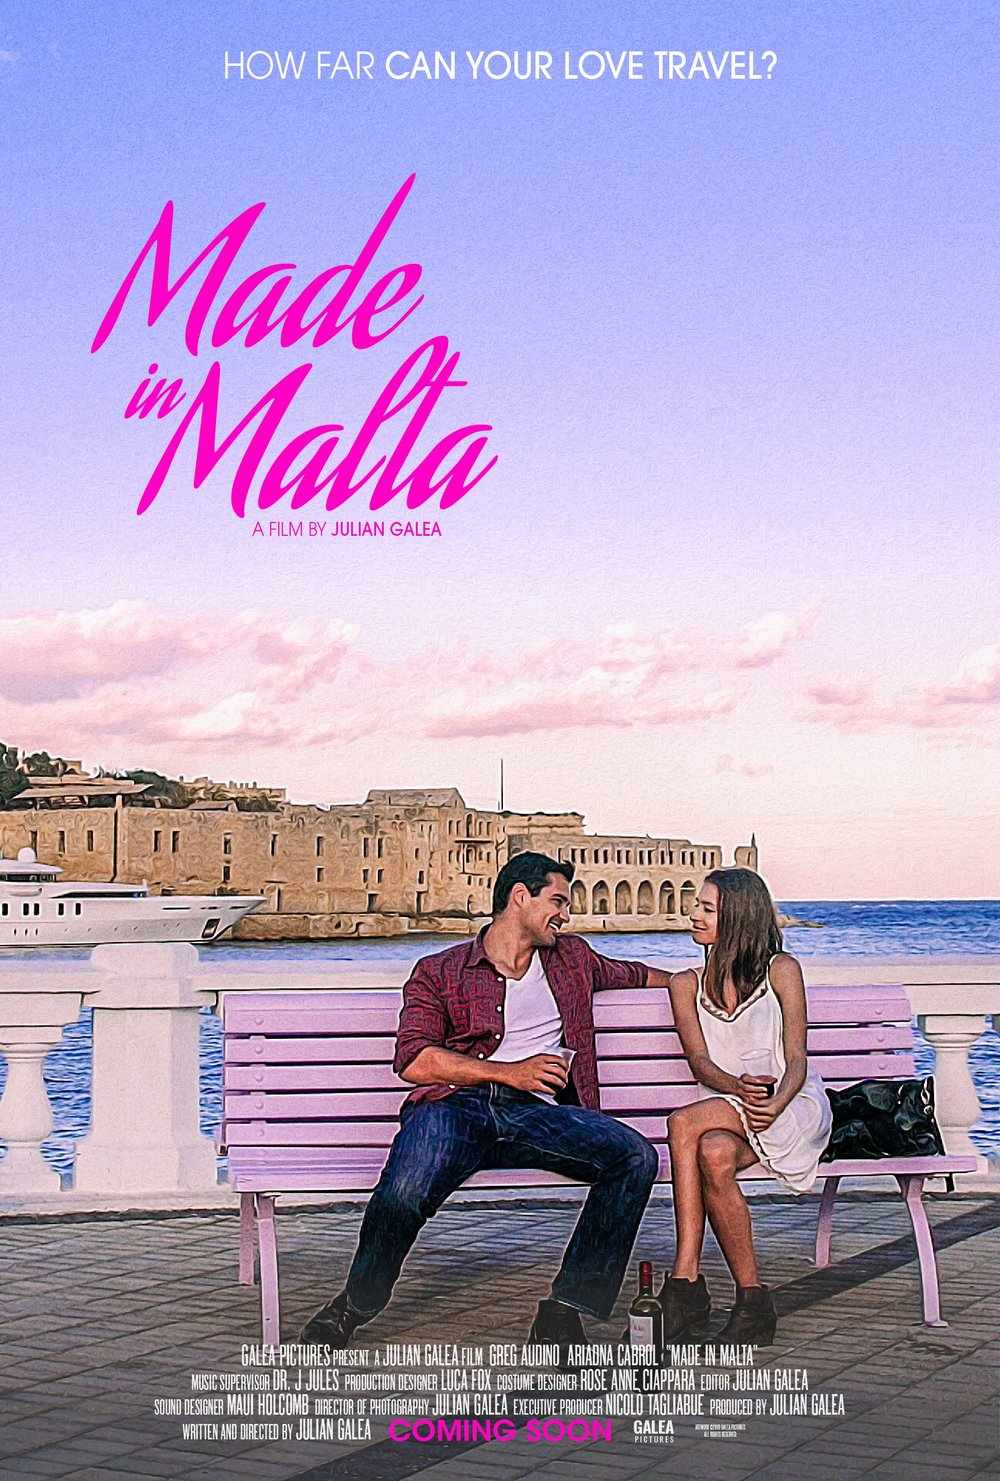 Made_in_Malta_Poster_72dpi_LR.jpg